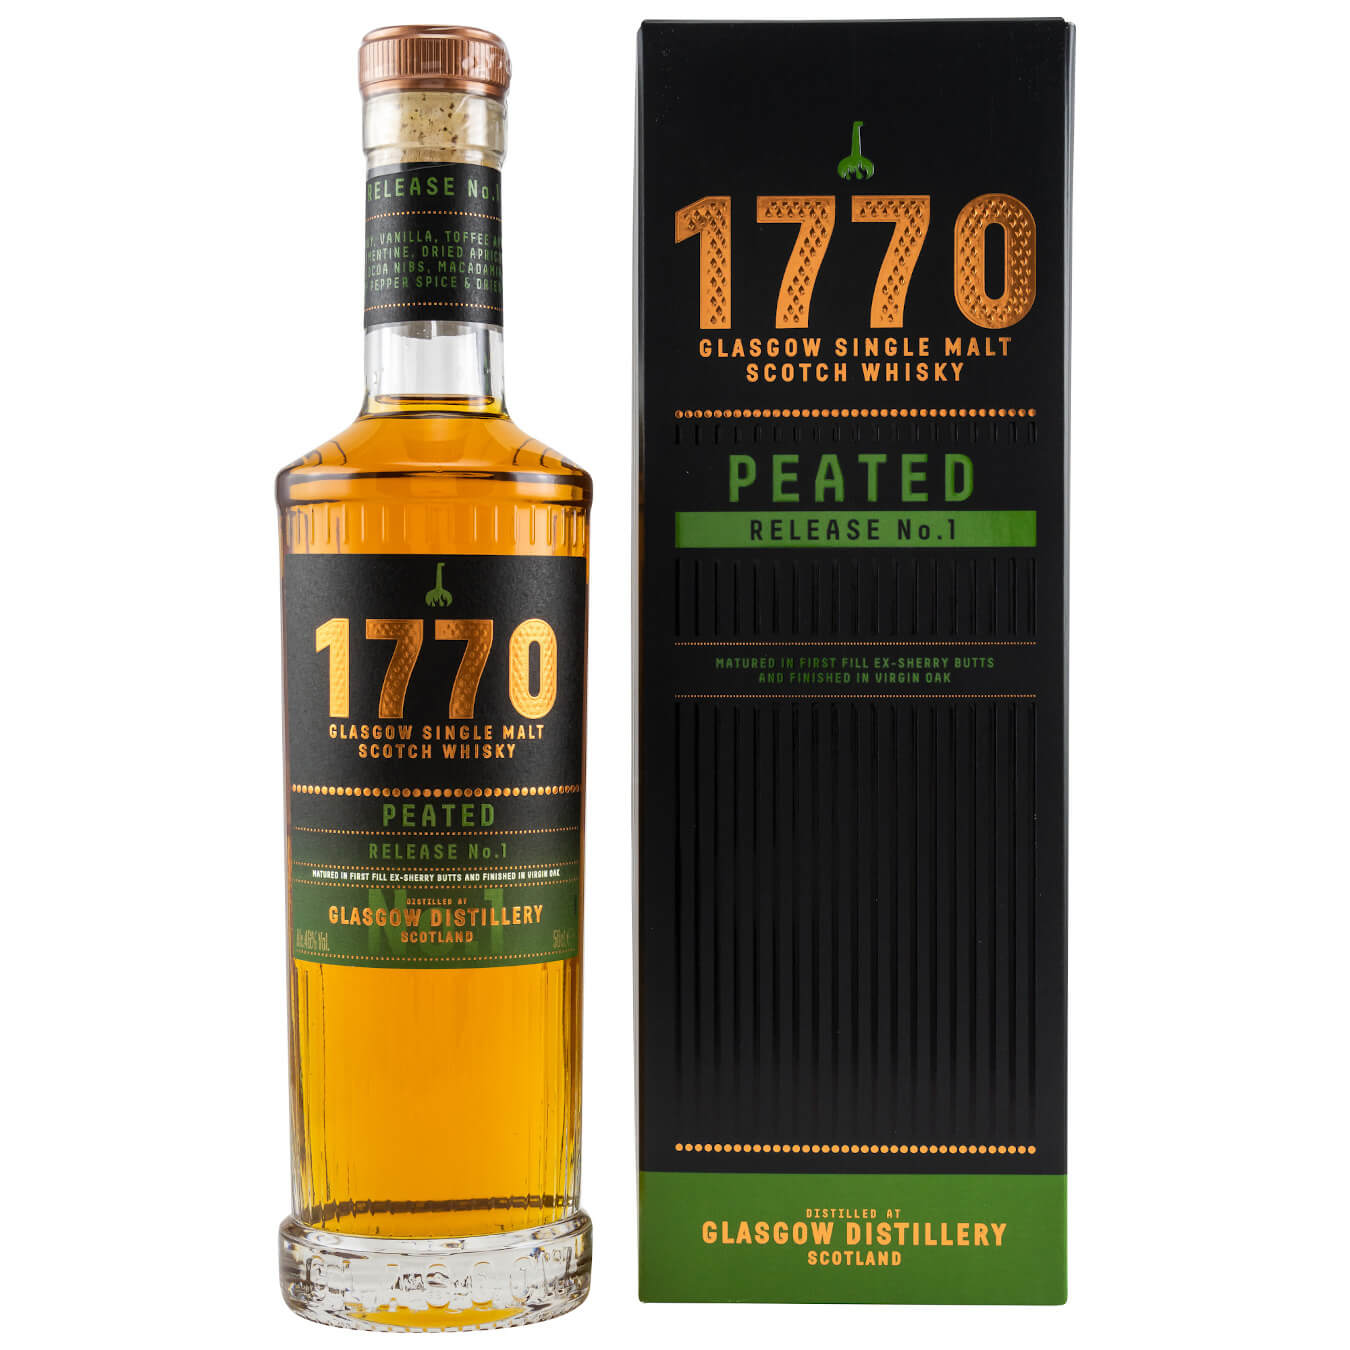 1770 Glasgow Distillery peated Whisky peated